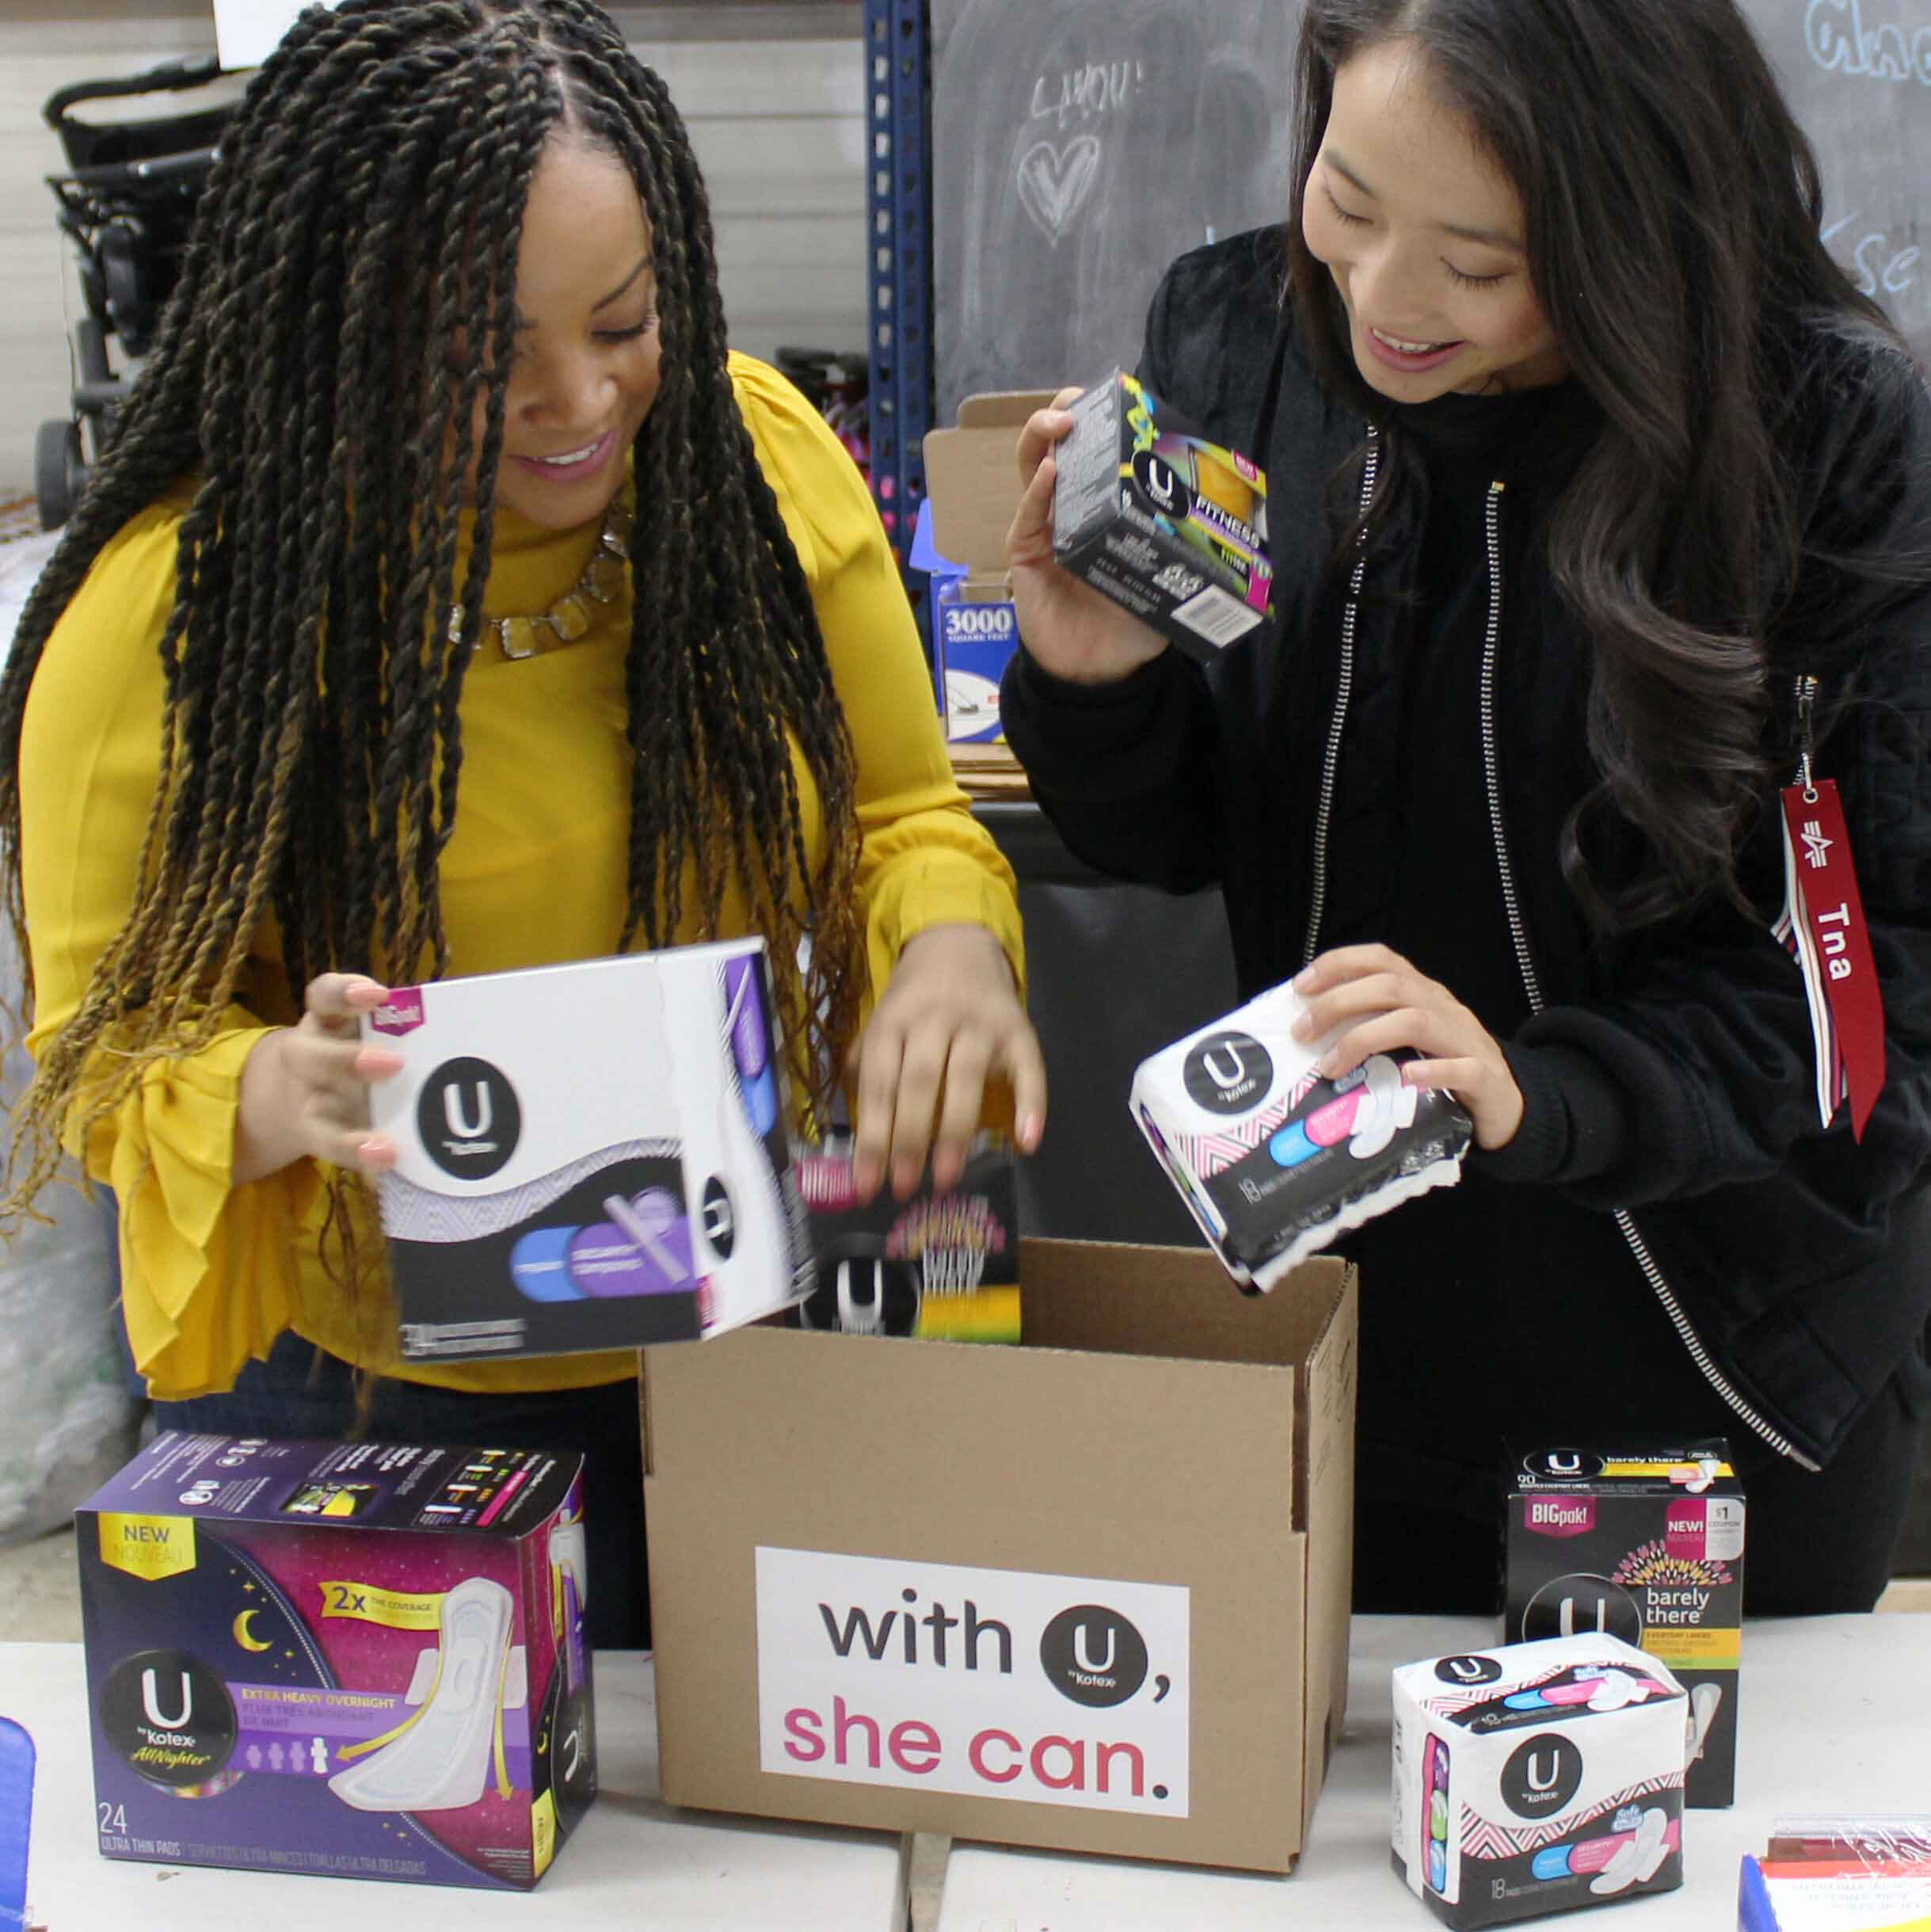 Packing U by Kotex tampons, pads and liners to ship to women in need